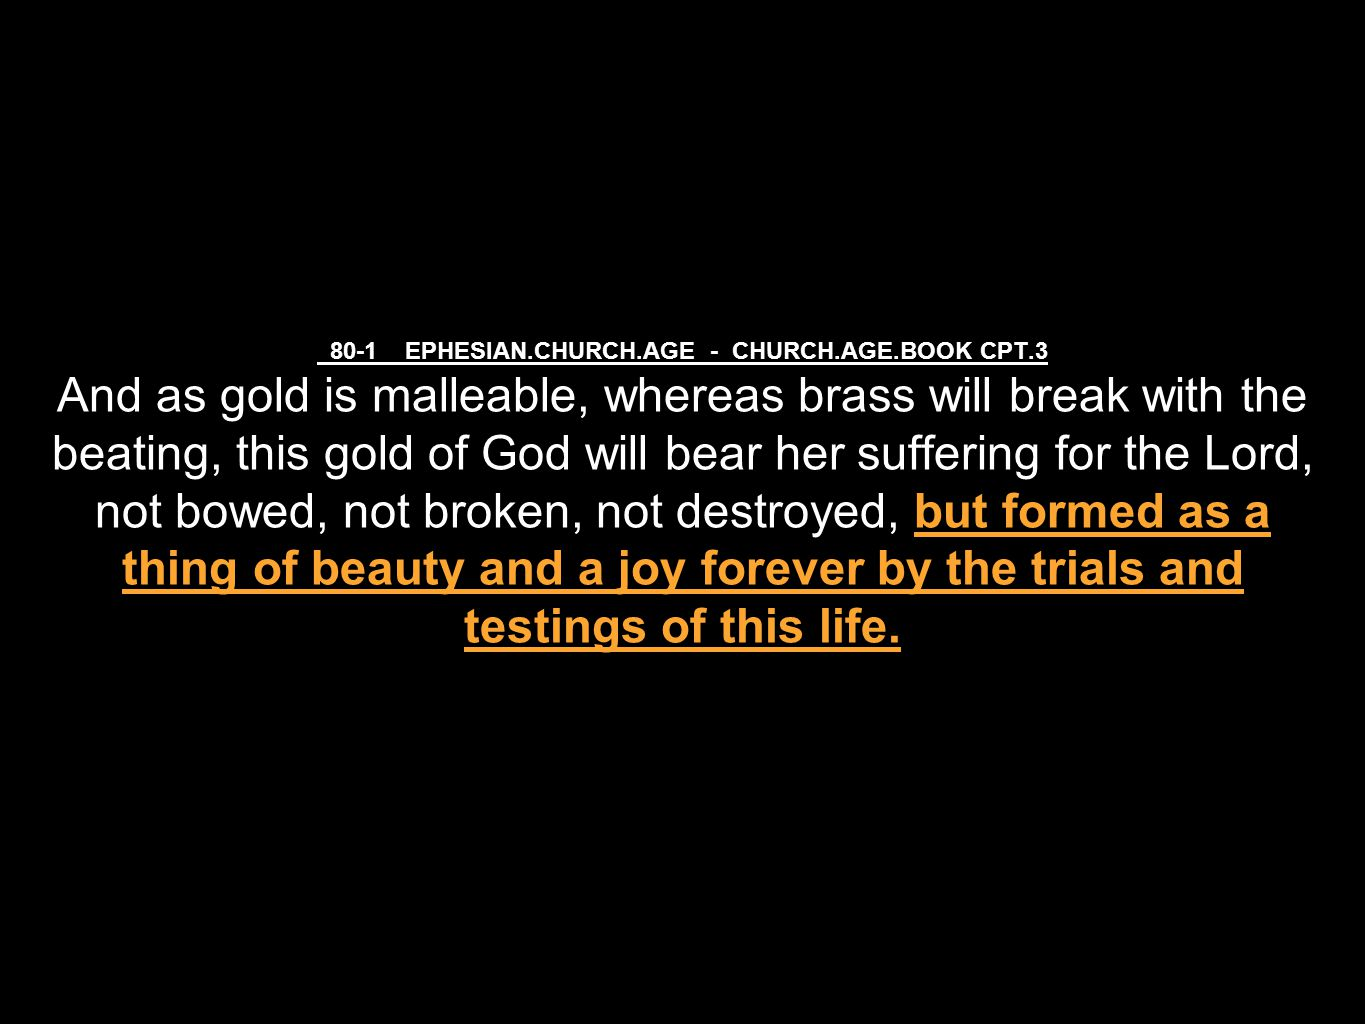 80-1 EPHESIAN.CHURCH.AGE - CHURCH.AGE.BOOK CPT.3 And as gold is malleable, whereas brass will break with the beating, this gold of God will bear her suffering for the Lord, not bowed, not broken, not destroyed, but formed as a thing of beauty and a joy forever by the trials and testings of this life.